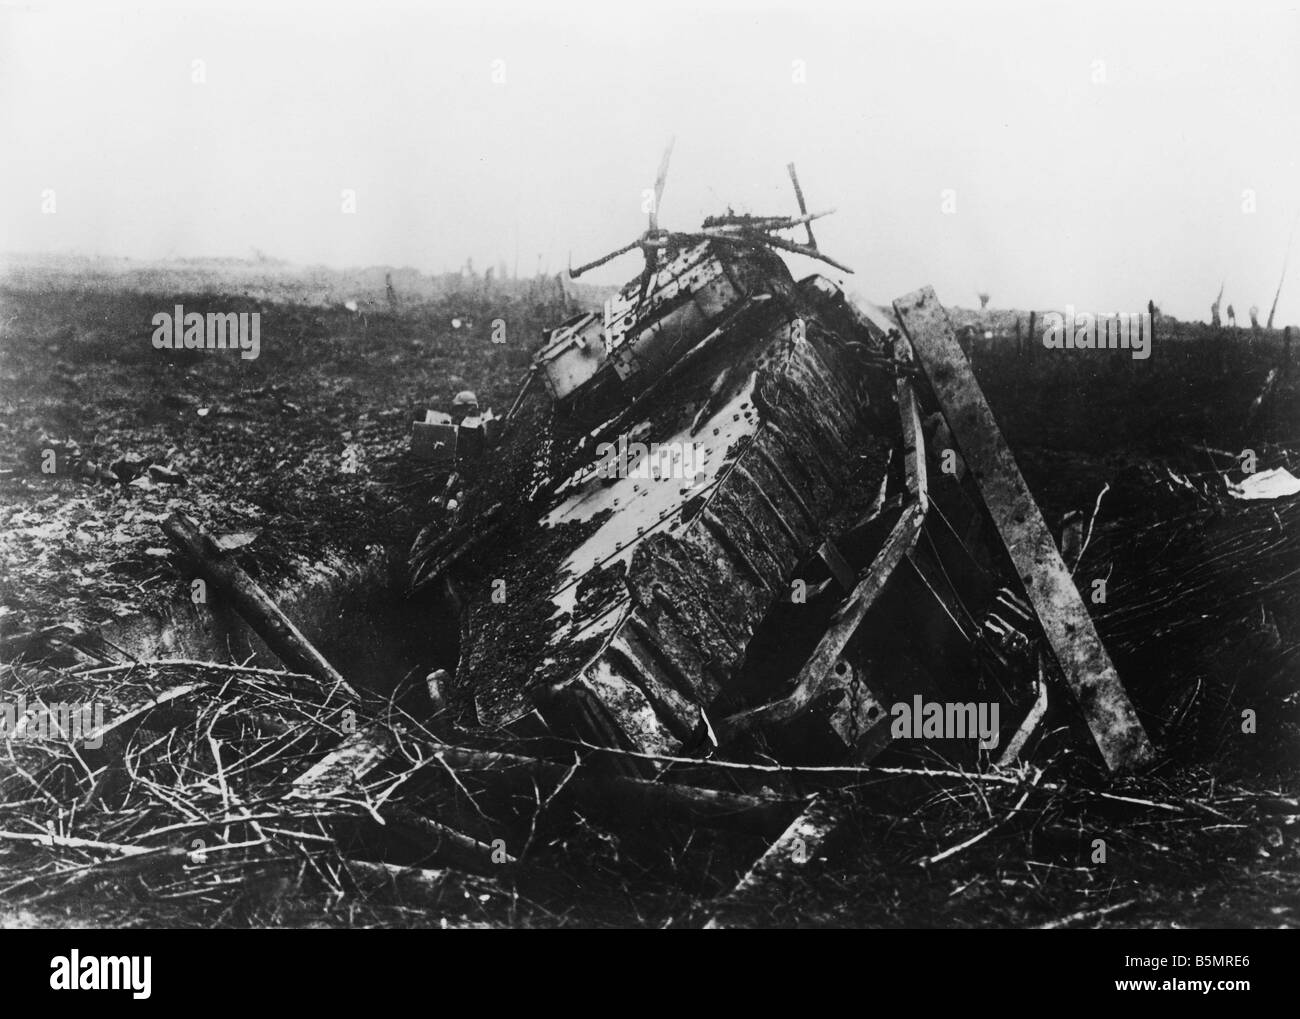 9 1917 11 20 A2 18 E Destroyed Eng tank Nov 1917 World War 1 1914 18 Western Front Tank battle at Cambrai 20th 29th - Stock Image